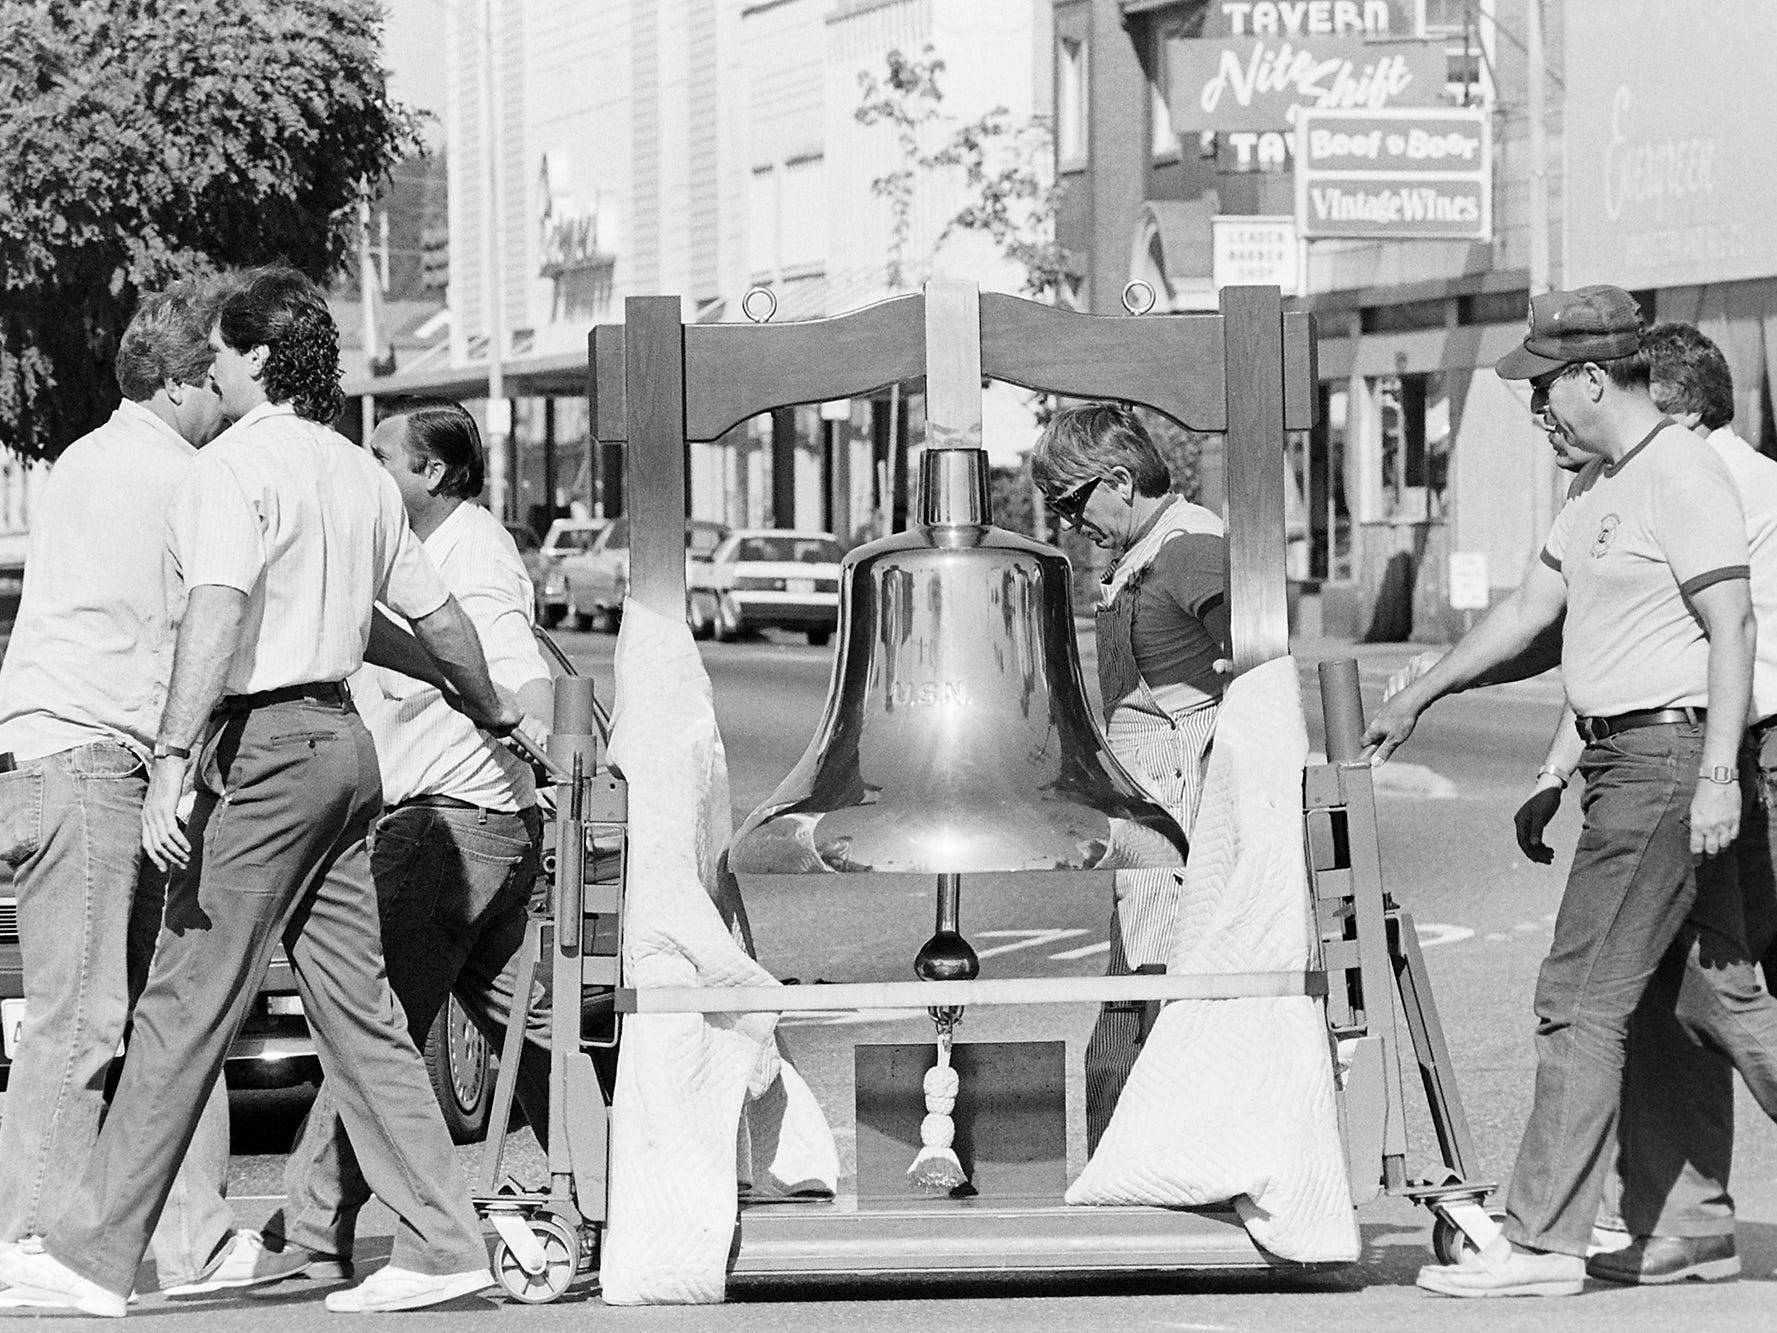 08/07/87